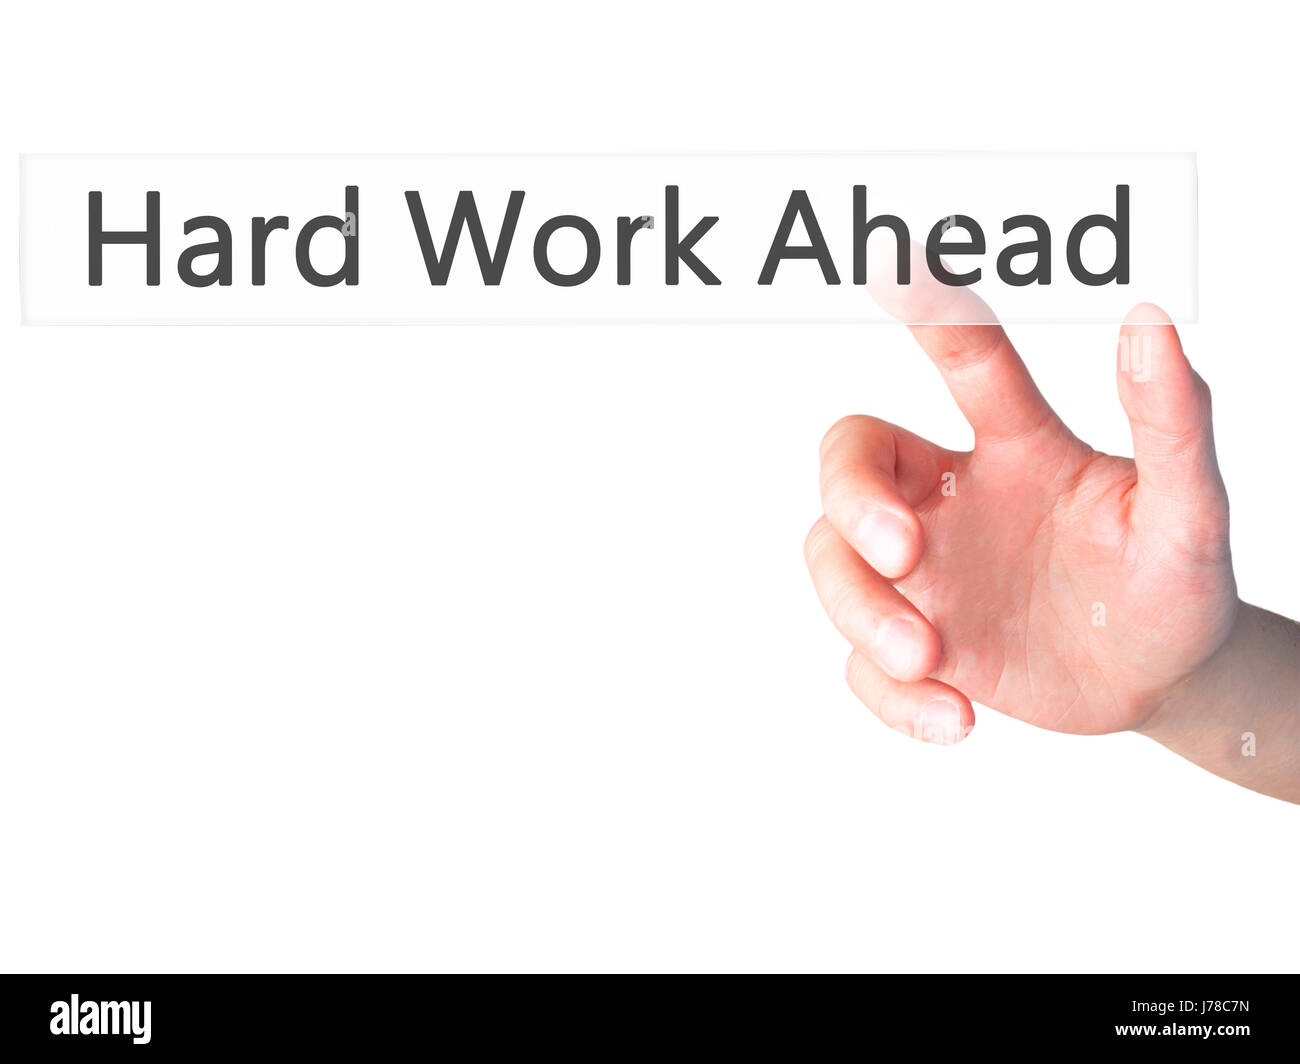 Hard Work Ahead - Hand pressing a button on blurred background concept . Business, technology, internet concept. - Stock Image